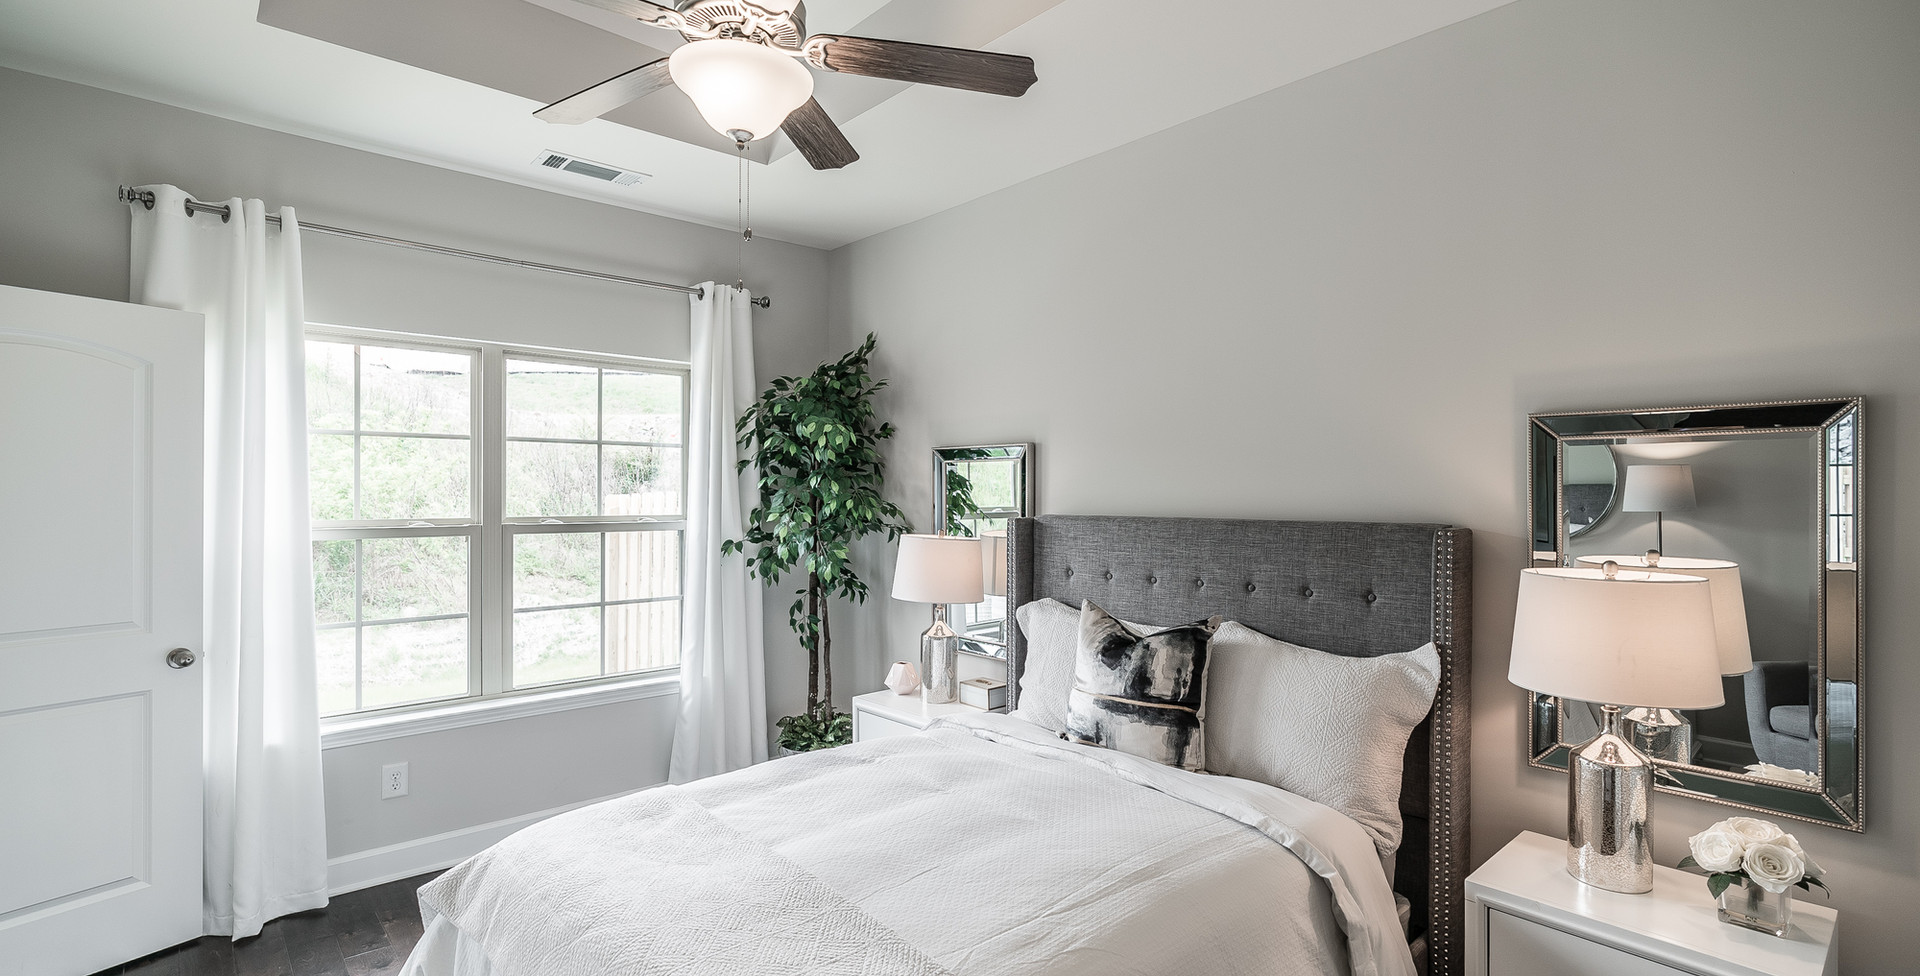 Townhome with Master bedroom on first floor!